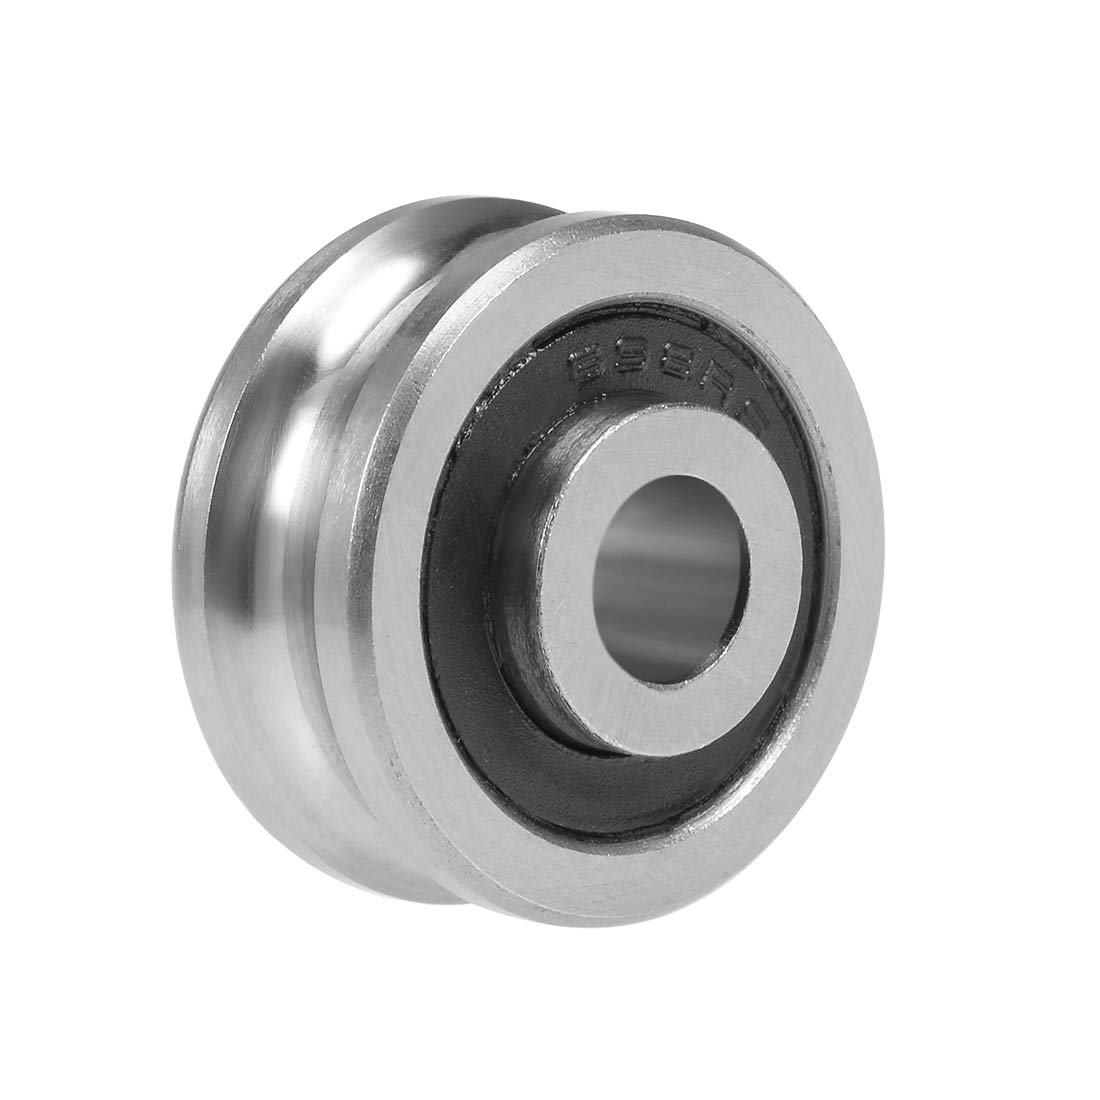 uxcell SG66 U-Groove Track Guide Bearing 6x22x10mm Pulley Wheel Bearings for Textile Machine